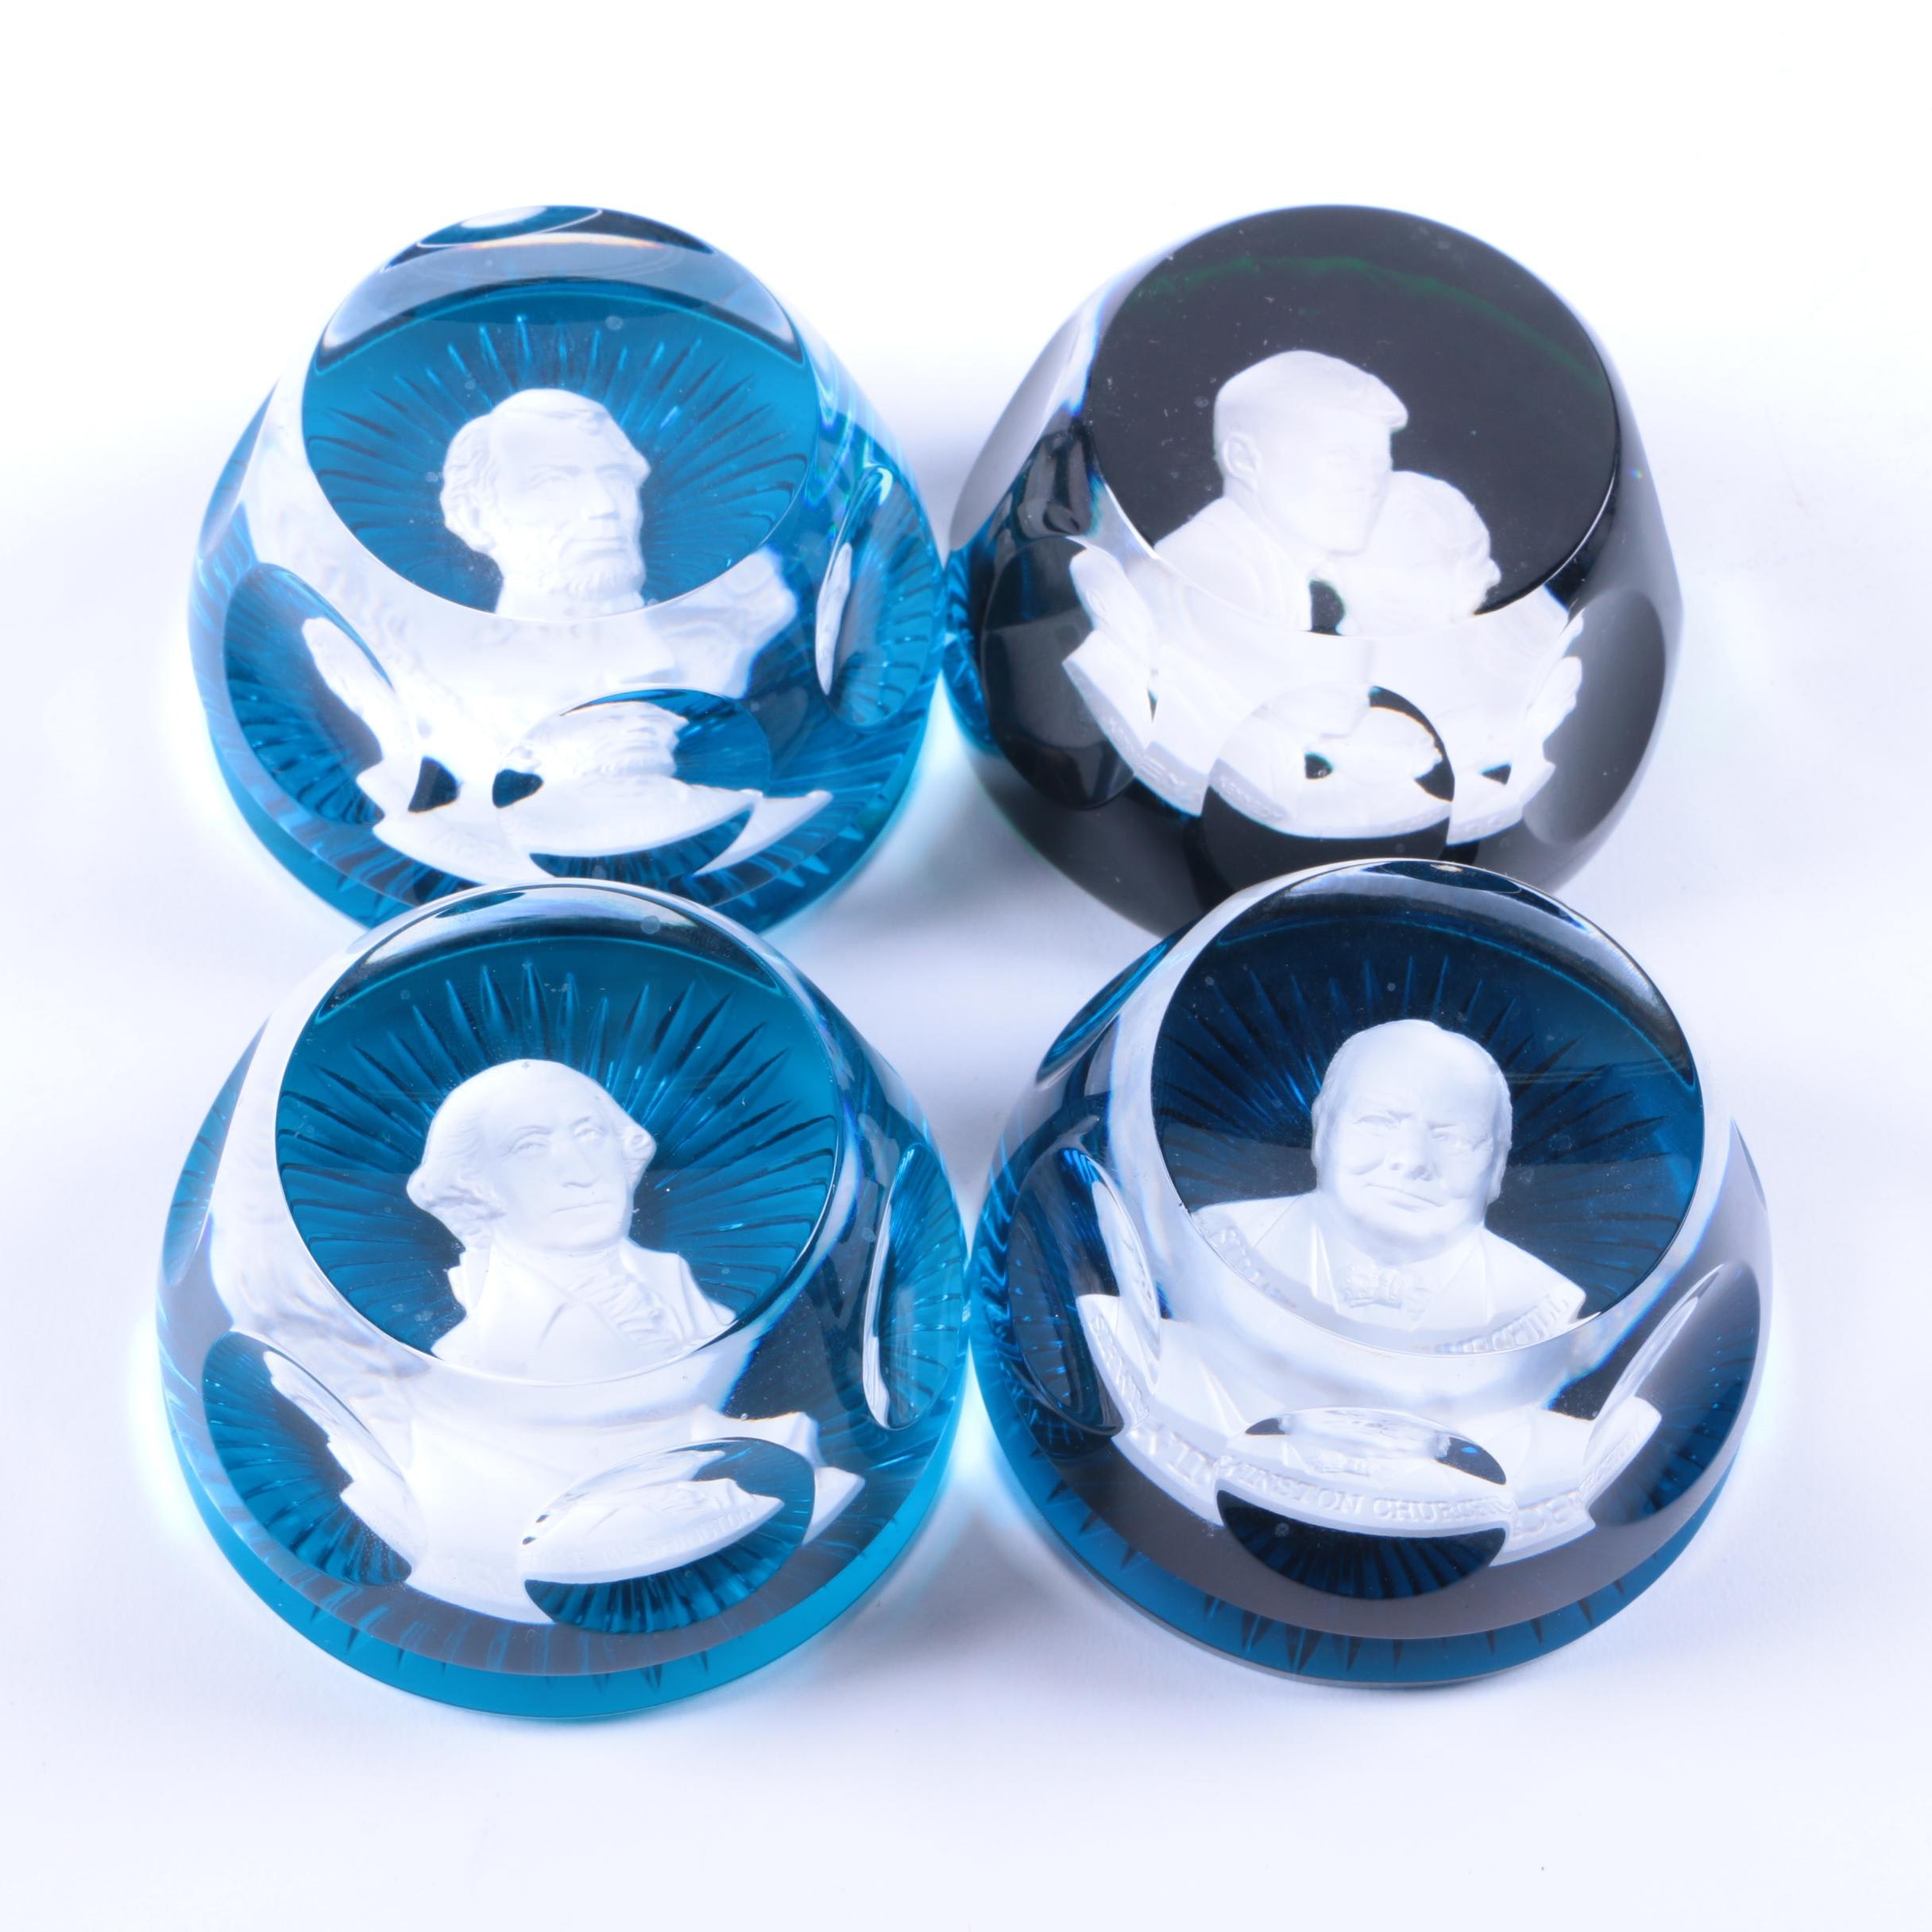 Baccarat Crystal and Franklin Mint Historical Cameo Paperweights